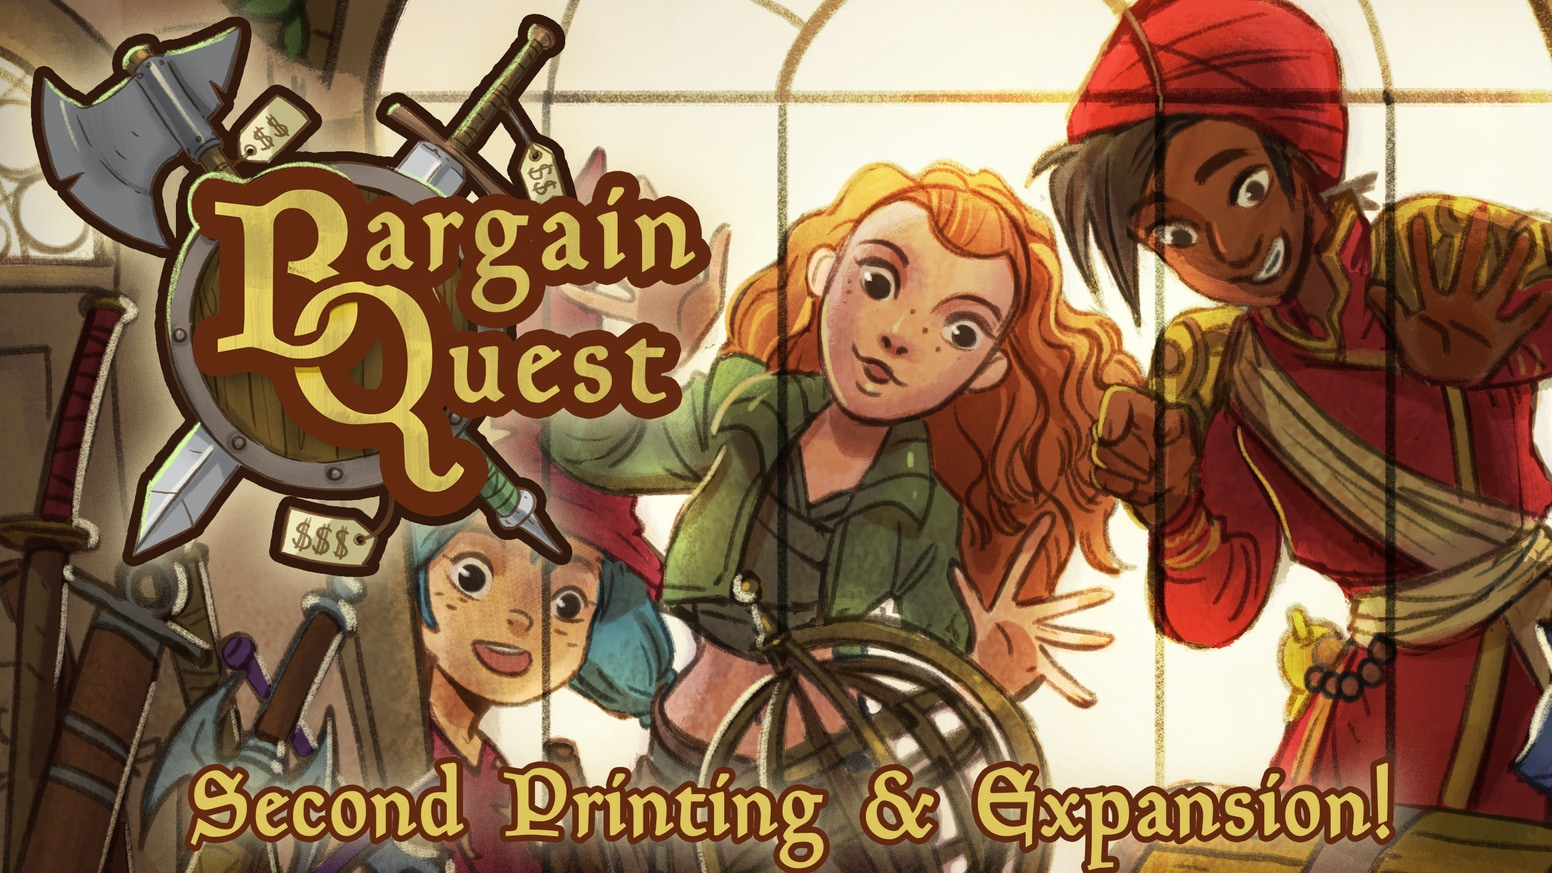 The second printing and a new expansion for the acclaimed Item Shop Board Game Bargain Quest!